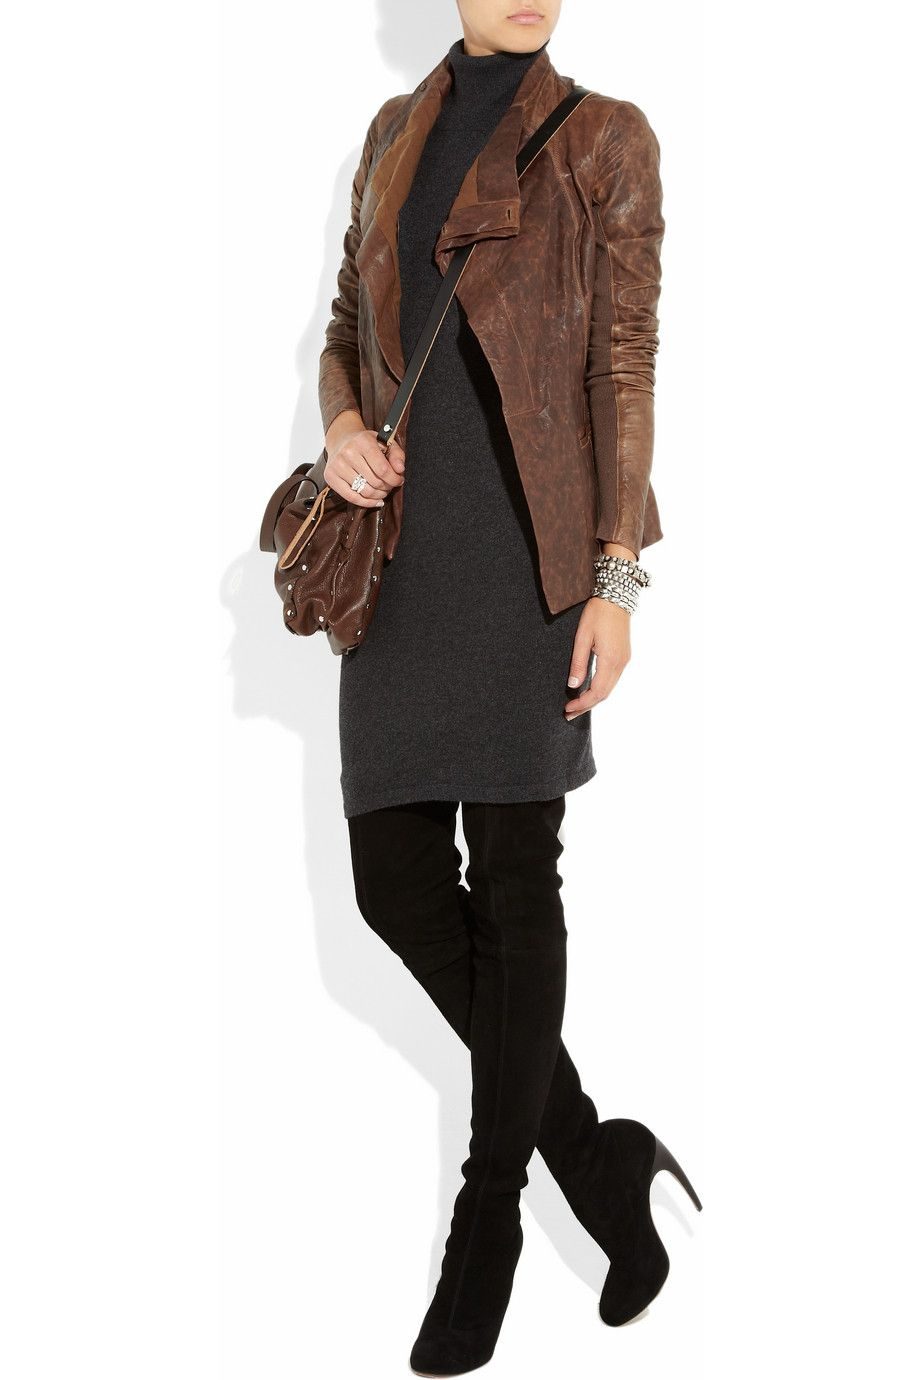 simple dress looking hot with a brown leather jacket and over the knee boots.